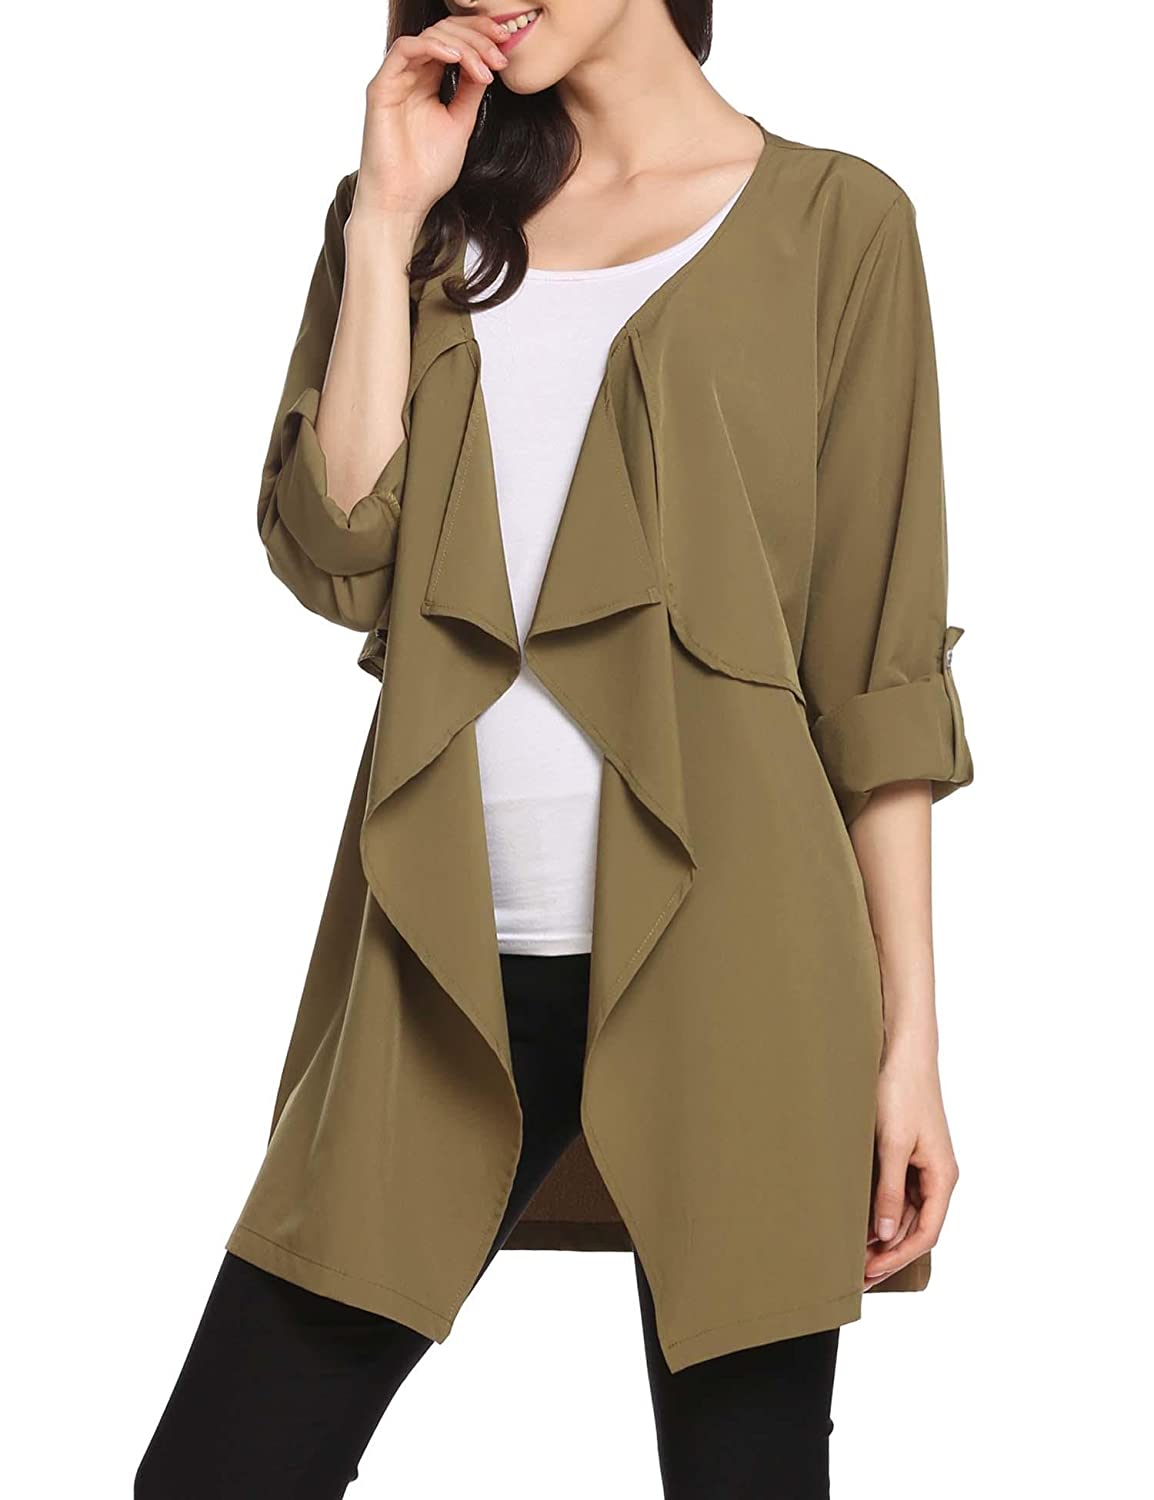 Beyove Womens Casual Open Front Cardigan Trench Coat Jacket with Pocket